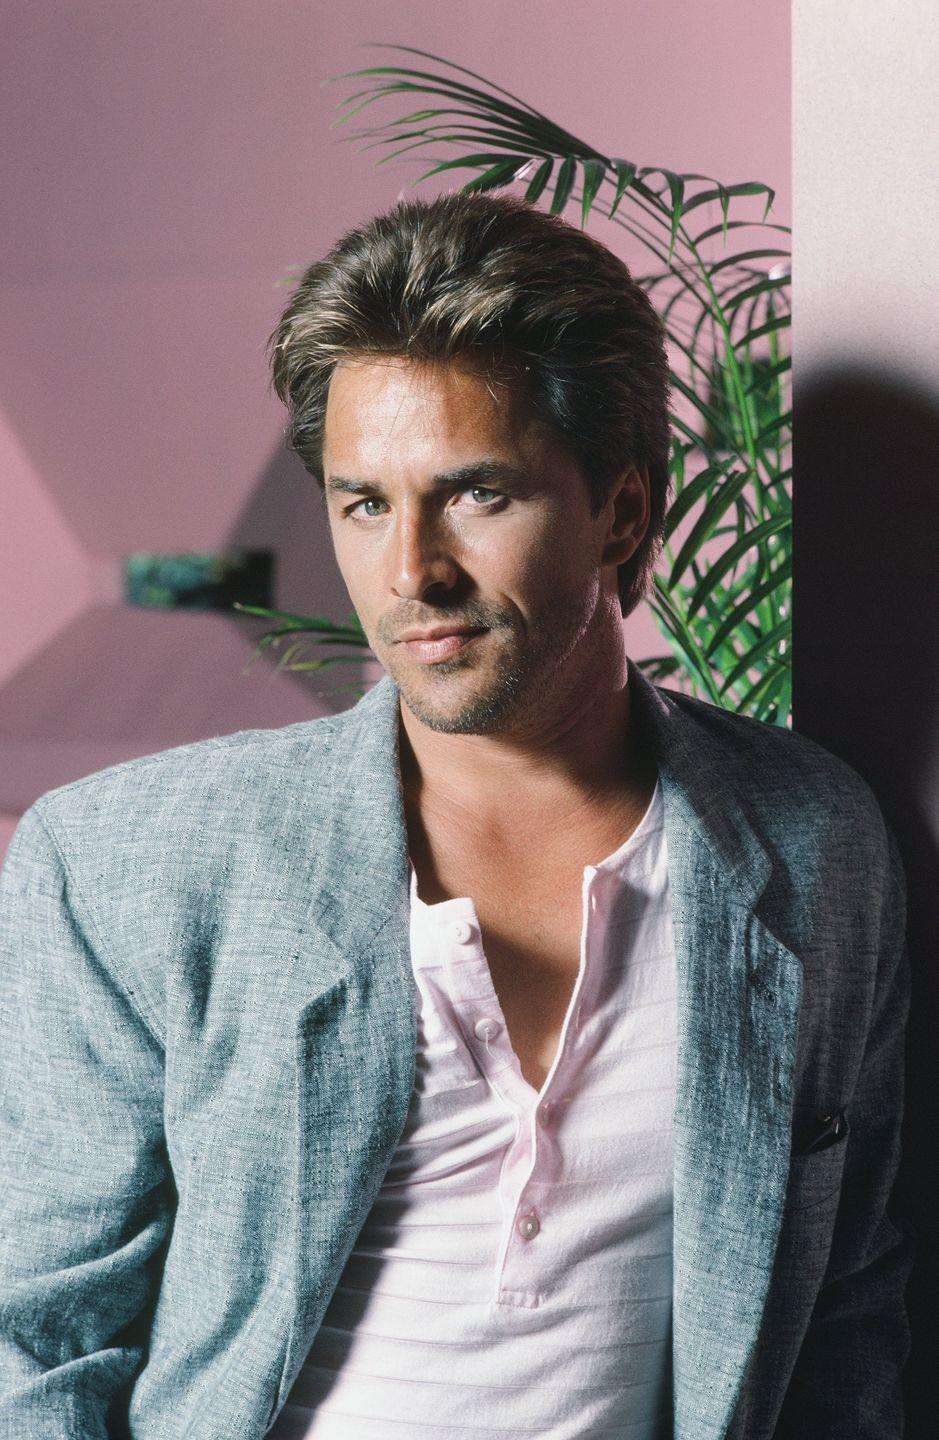 """<p>Not only did Don Johnson make great eye candy while playing James """"Sonny"""" Crockett on <em>Miami Vice</em>, he was also nominated for a Golden Globe for his portrayal.</p>"""